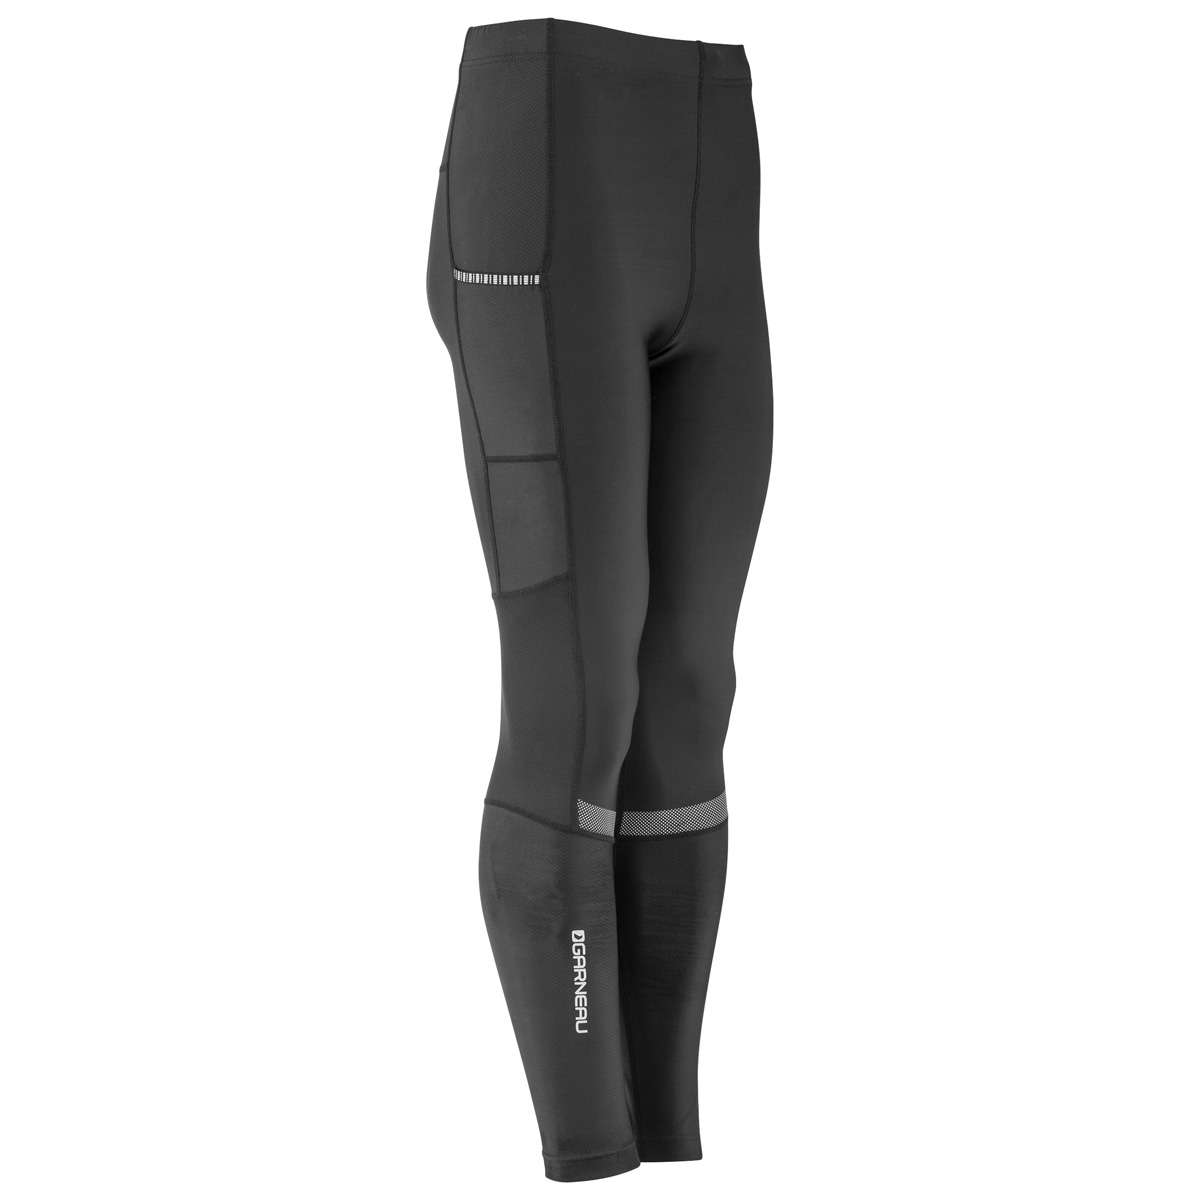 Louis Garneau 2019 Men's Optimum Mat Running Cycling Tights - NO pad - 1060229